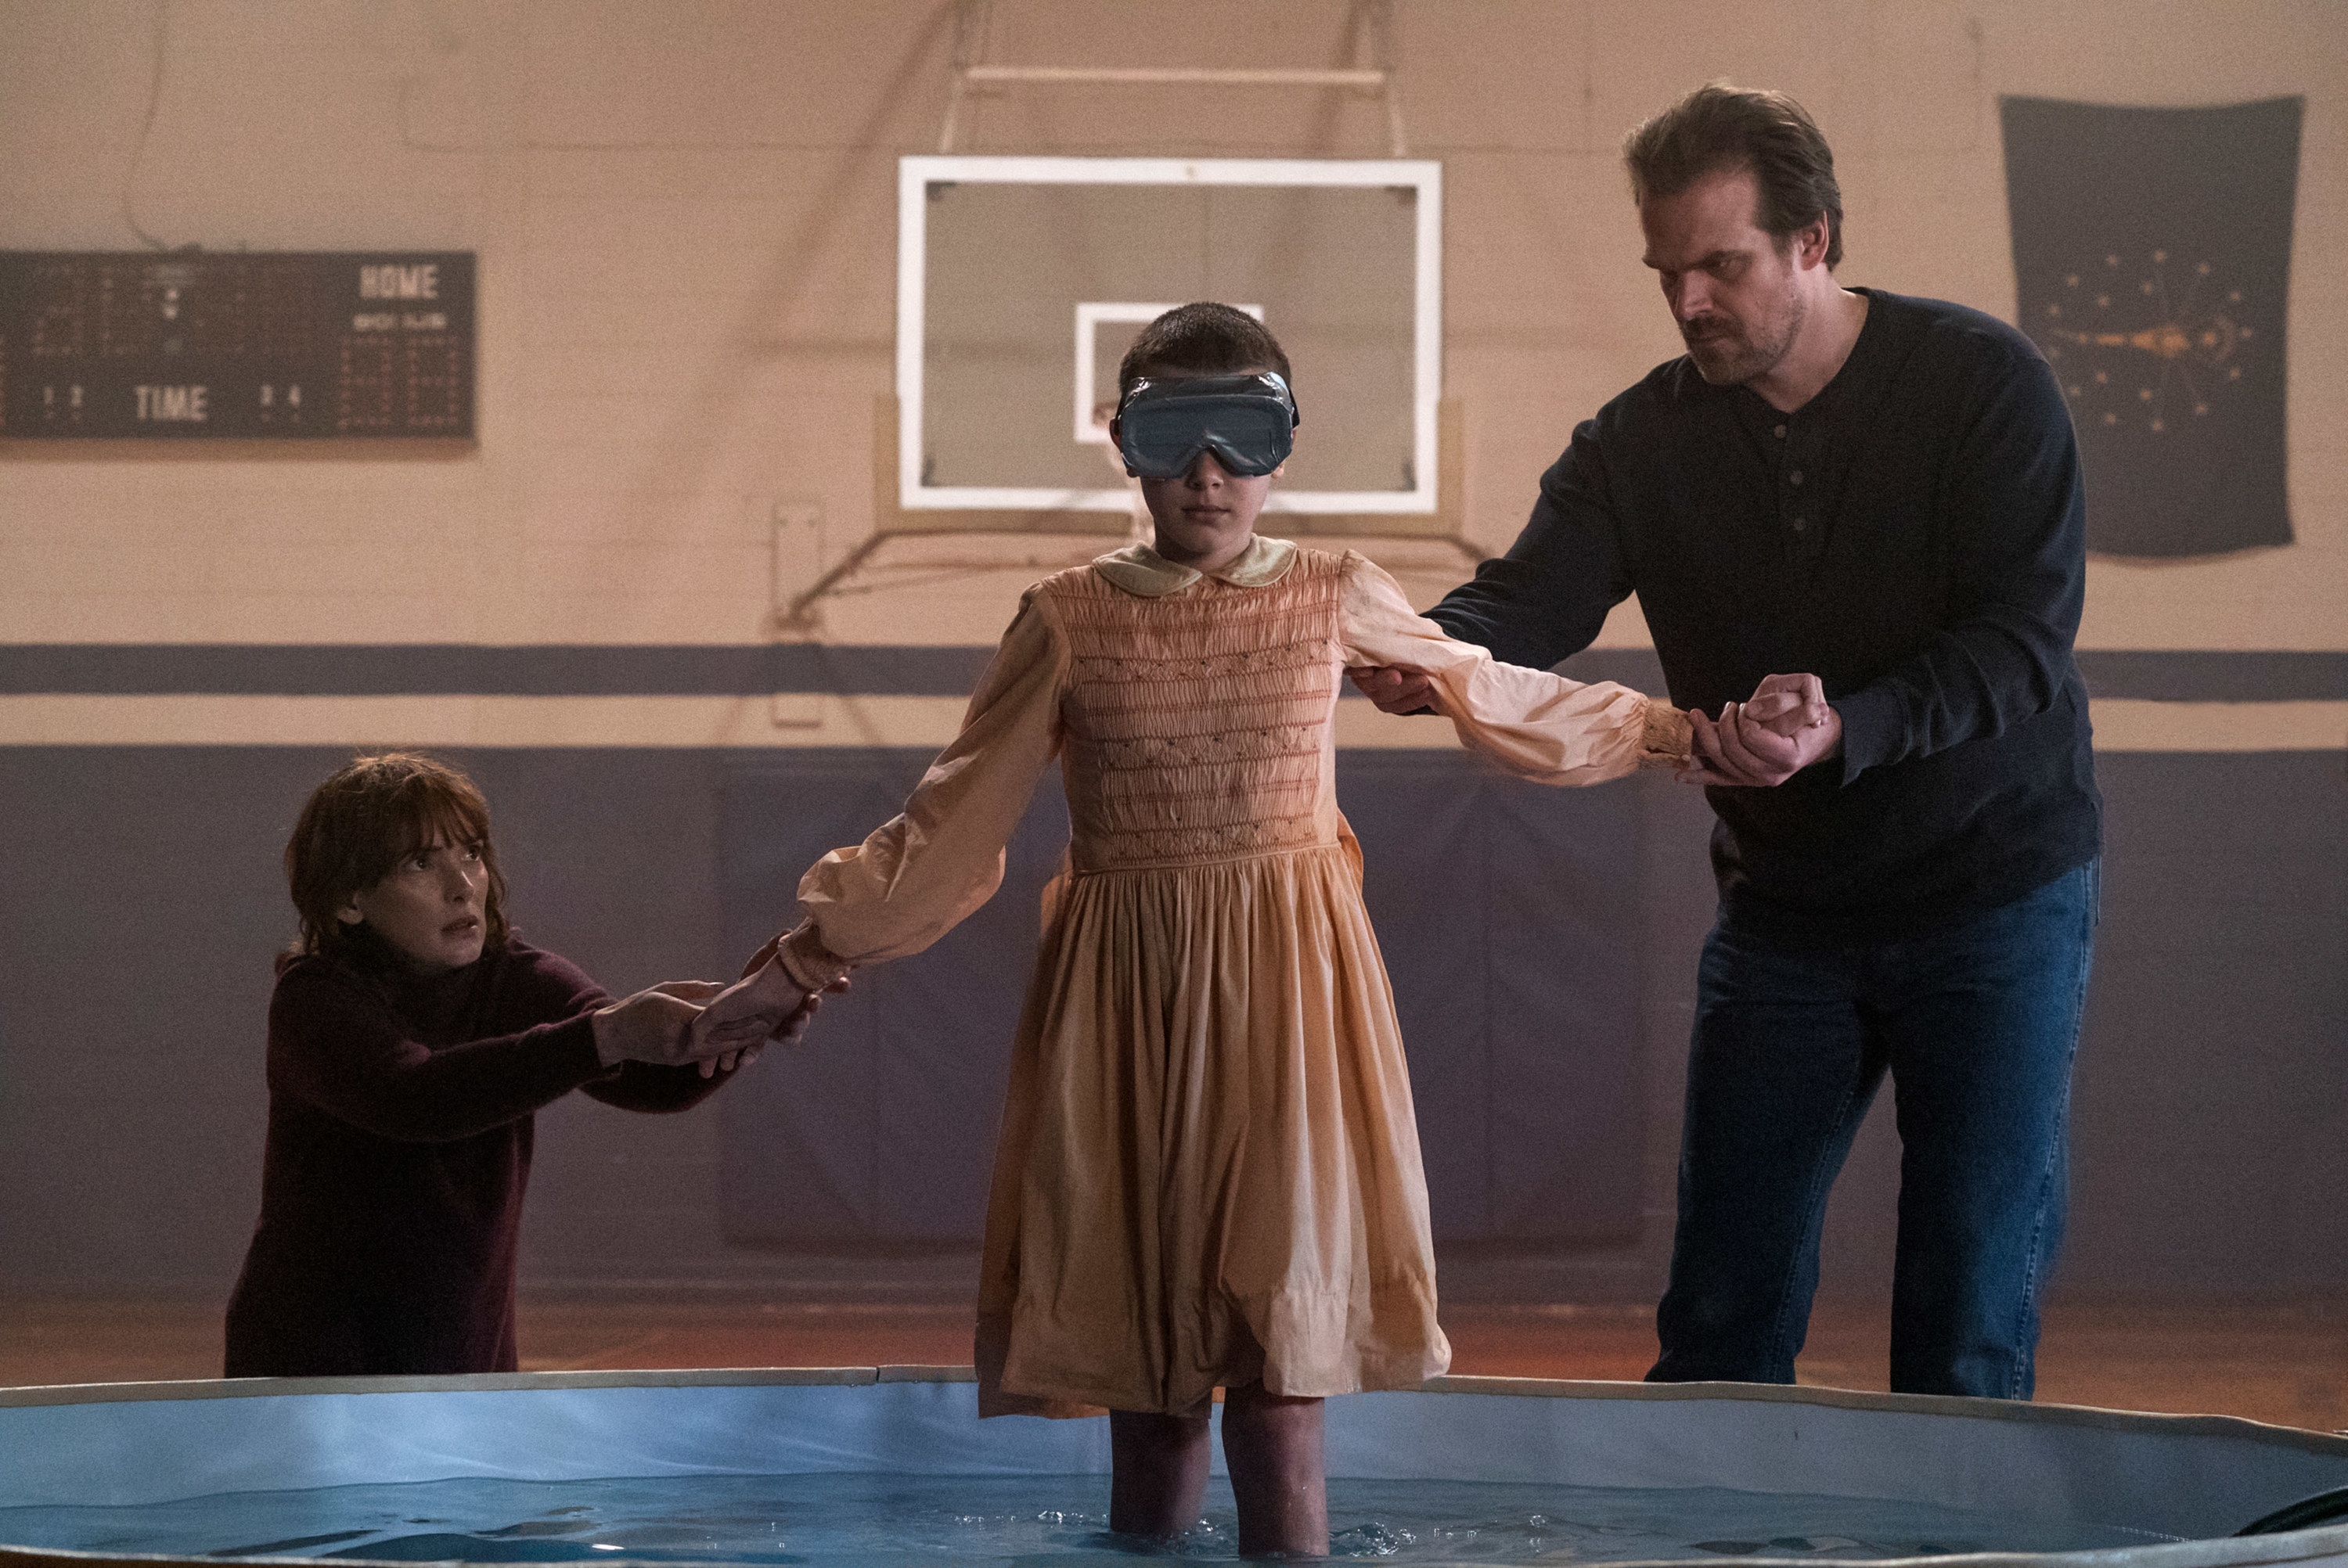 Joyce Byers and Hopper help Eleven into the saltwater pool in season 1